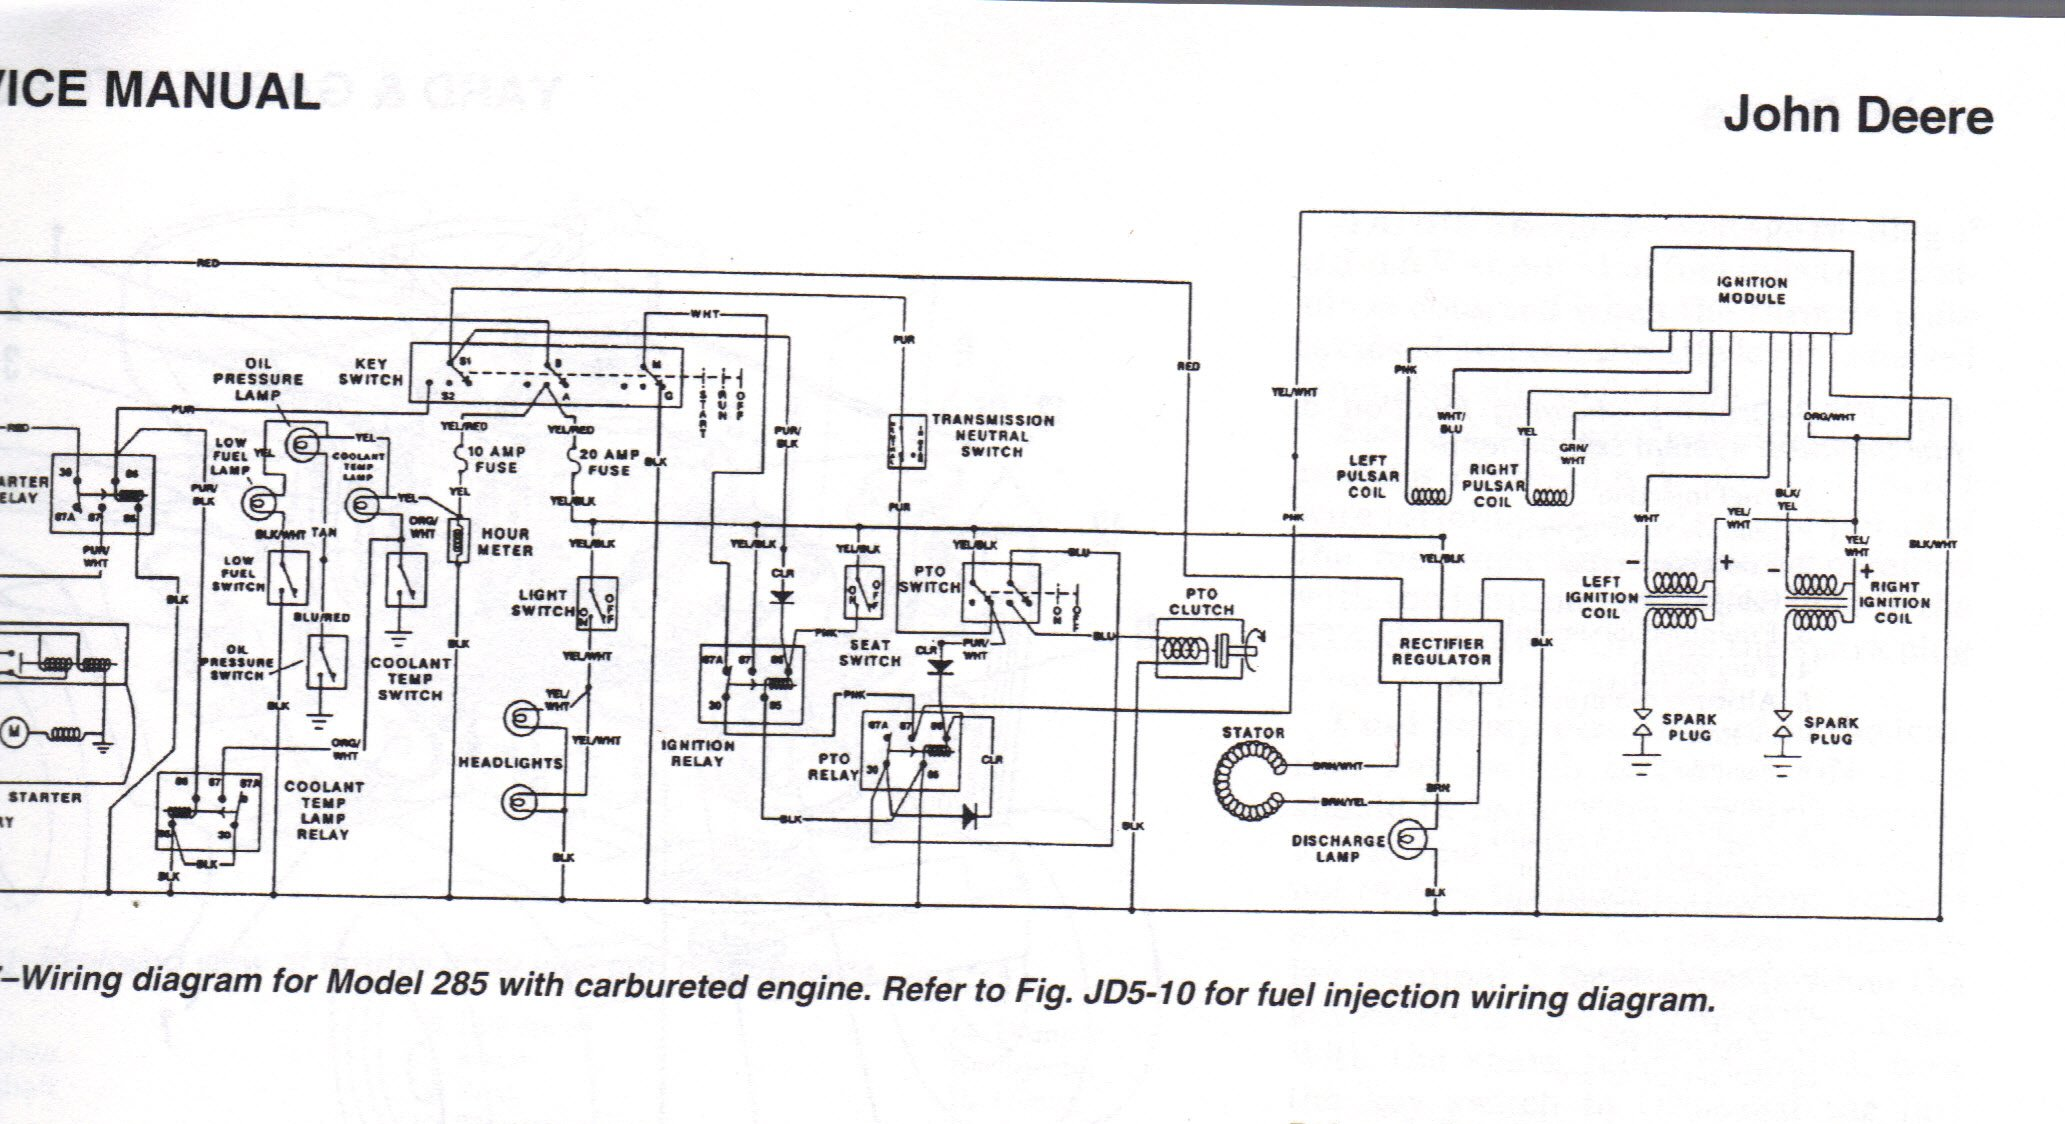 john deere f911 wiring diagram how do you wire a starter switch for a deere model 320 6 ...